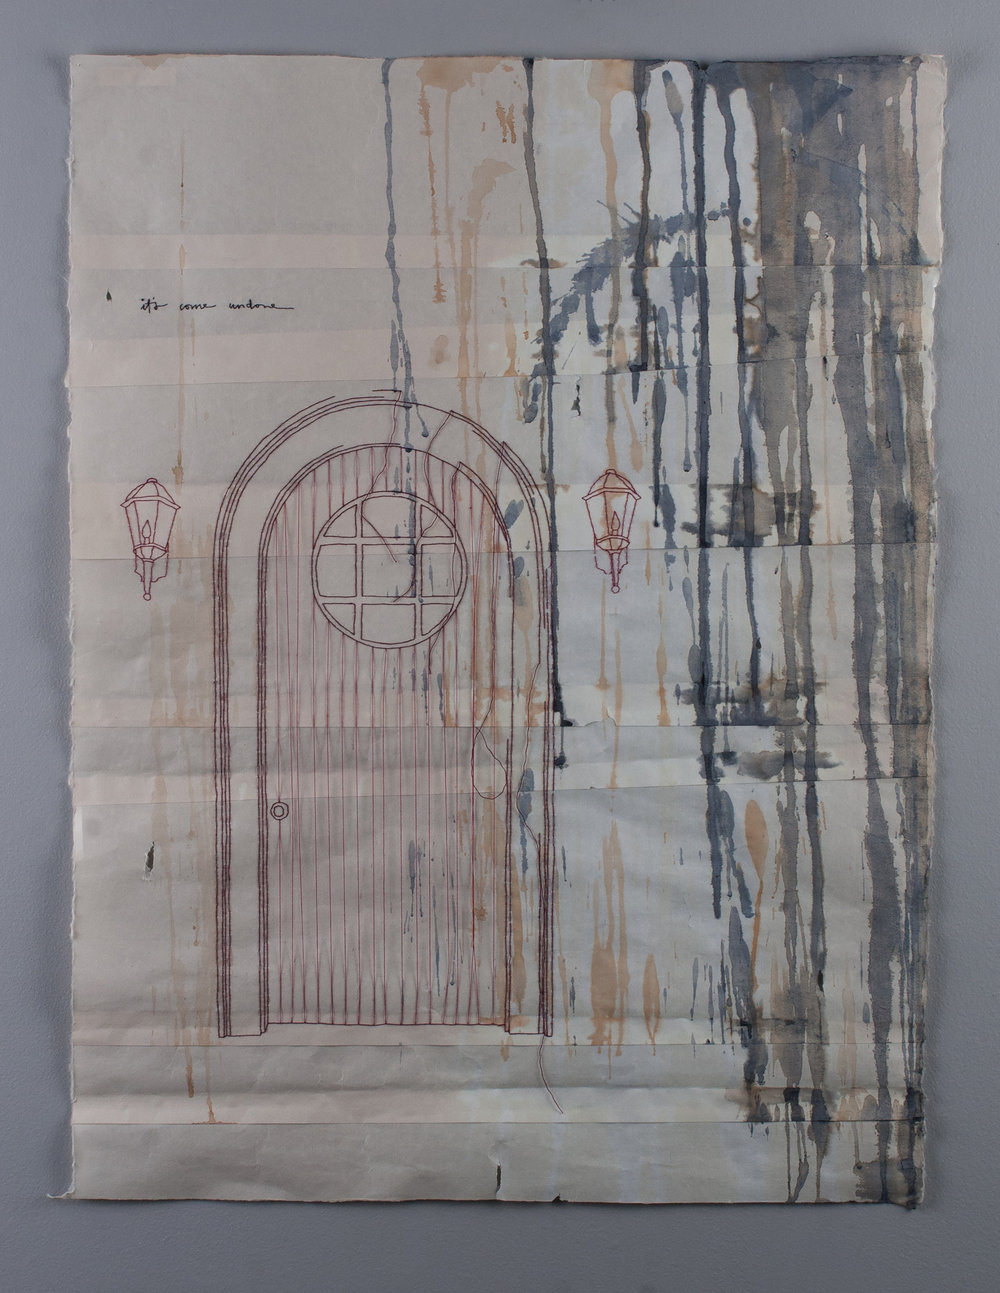 closed and unlit (it's come undone)   2013 work on paper with embroidery, tea, and watercolor